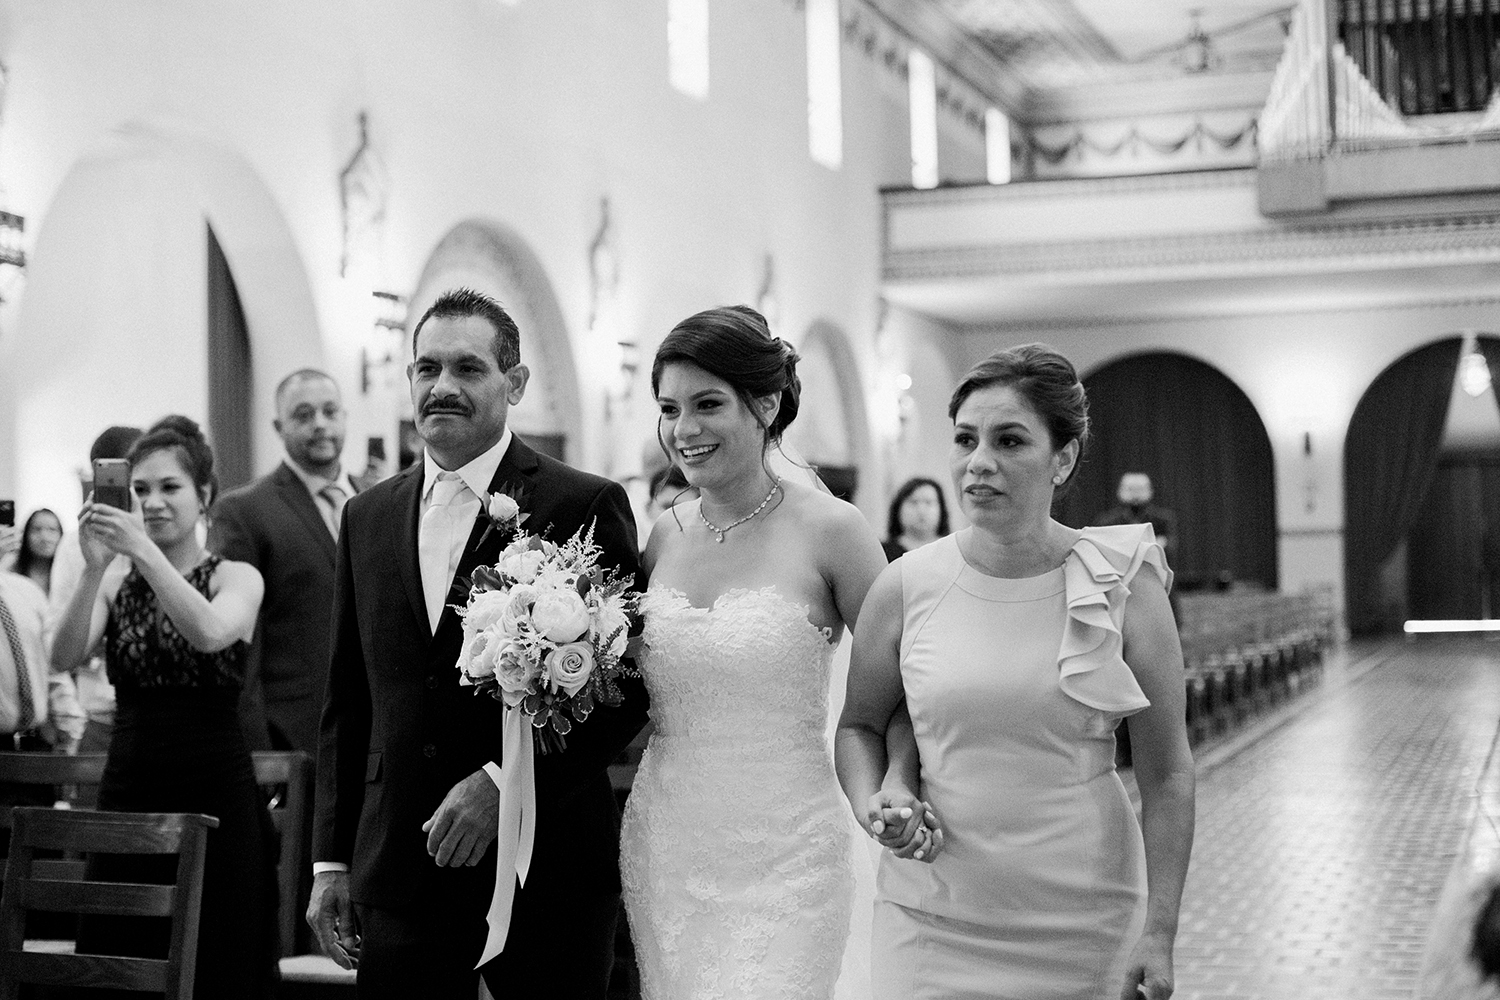 A modern bride walking down the aisle during her church wedding in Mission Santa Clara de Asís.